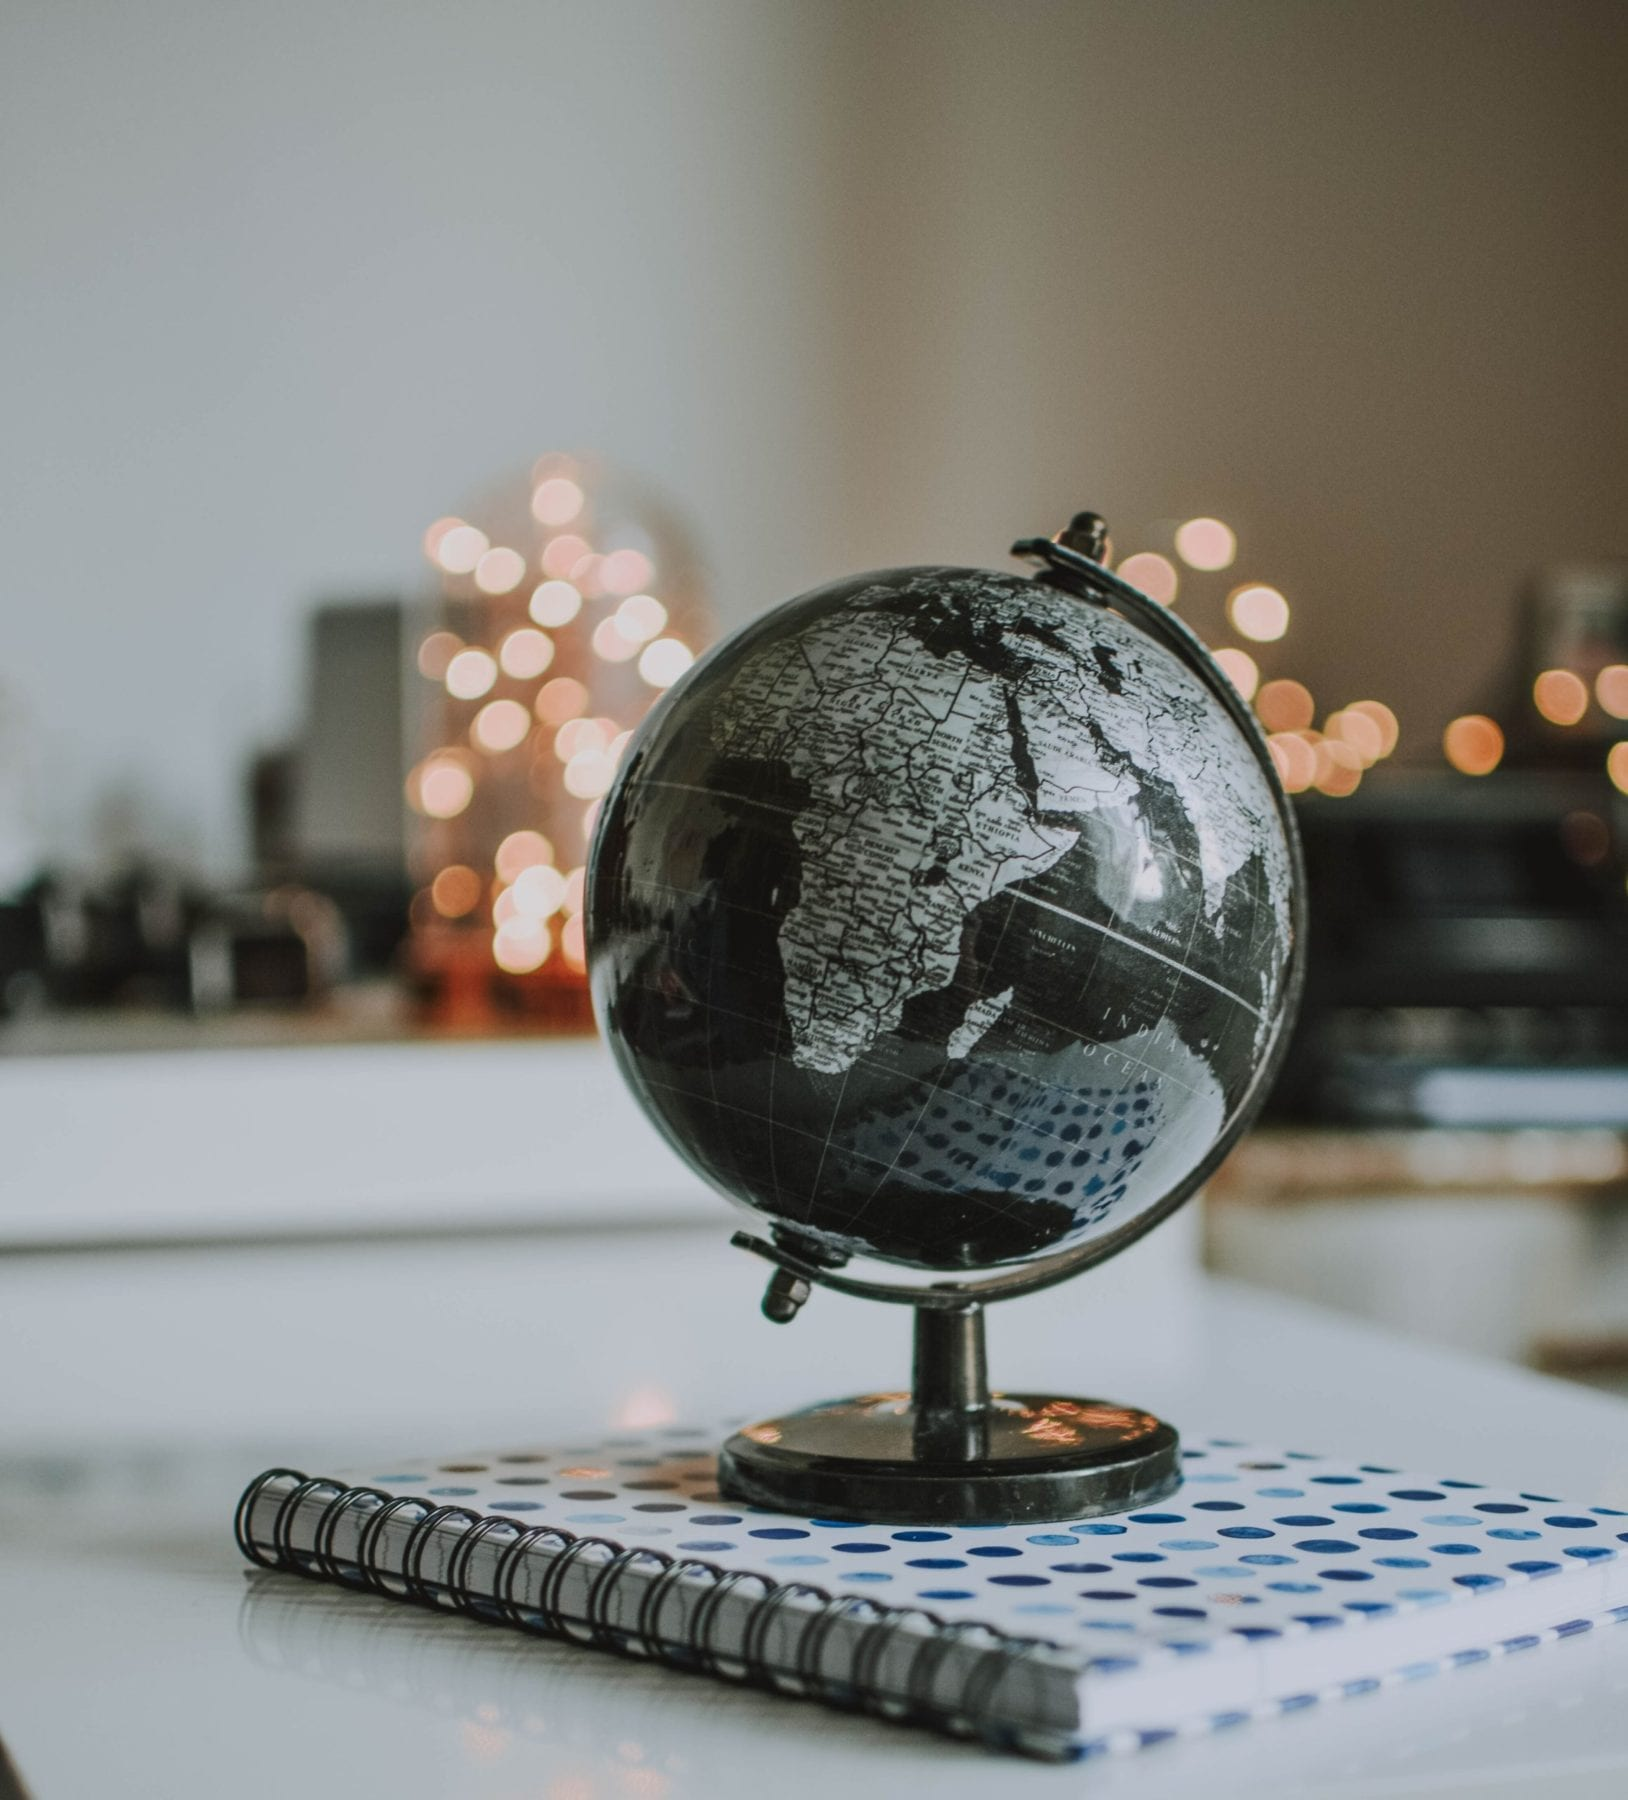 Project Explorer offers free global citizenship lessons